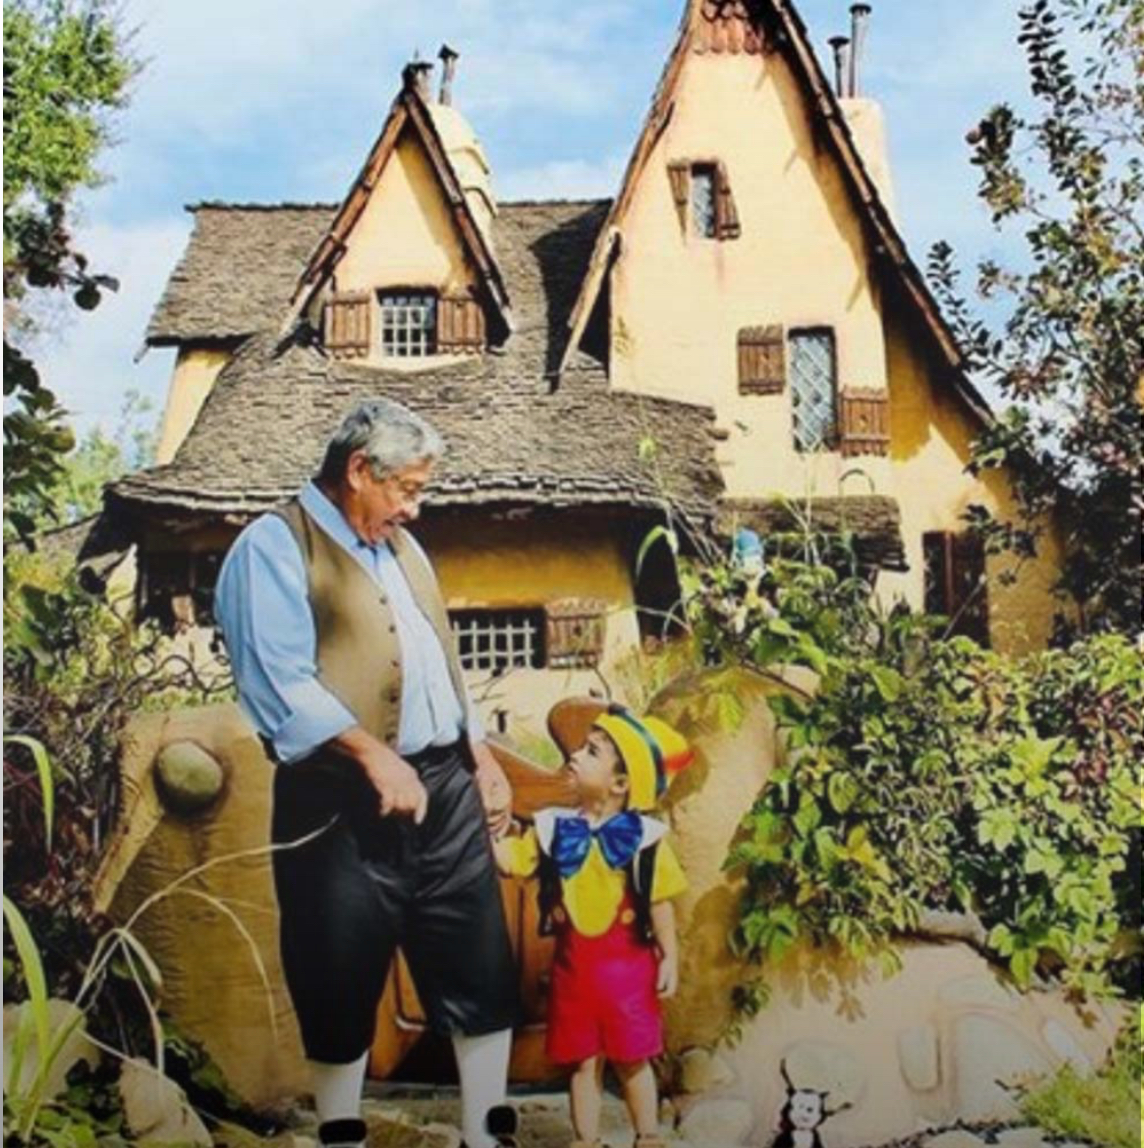 A small boy dressed up like Pinnocchio holds hands with an old man dressed like Gepetto at Gepetto's house in Disneyland in California. Instagram photo of the Spadena House by @mrsaguilarmarquez